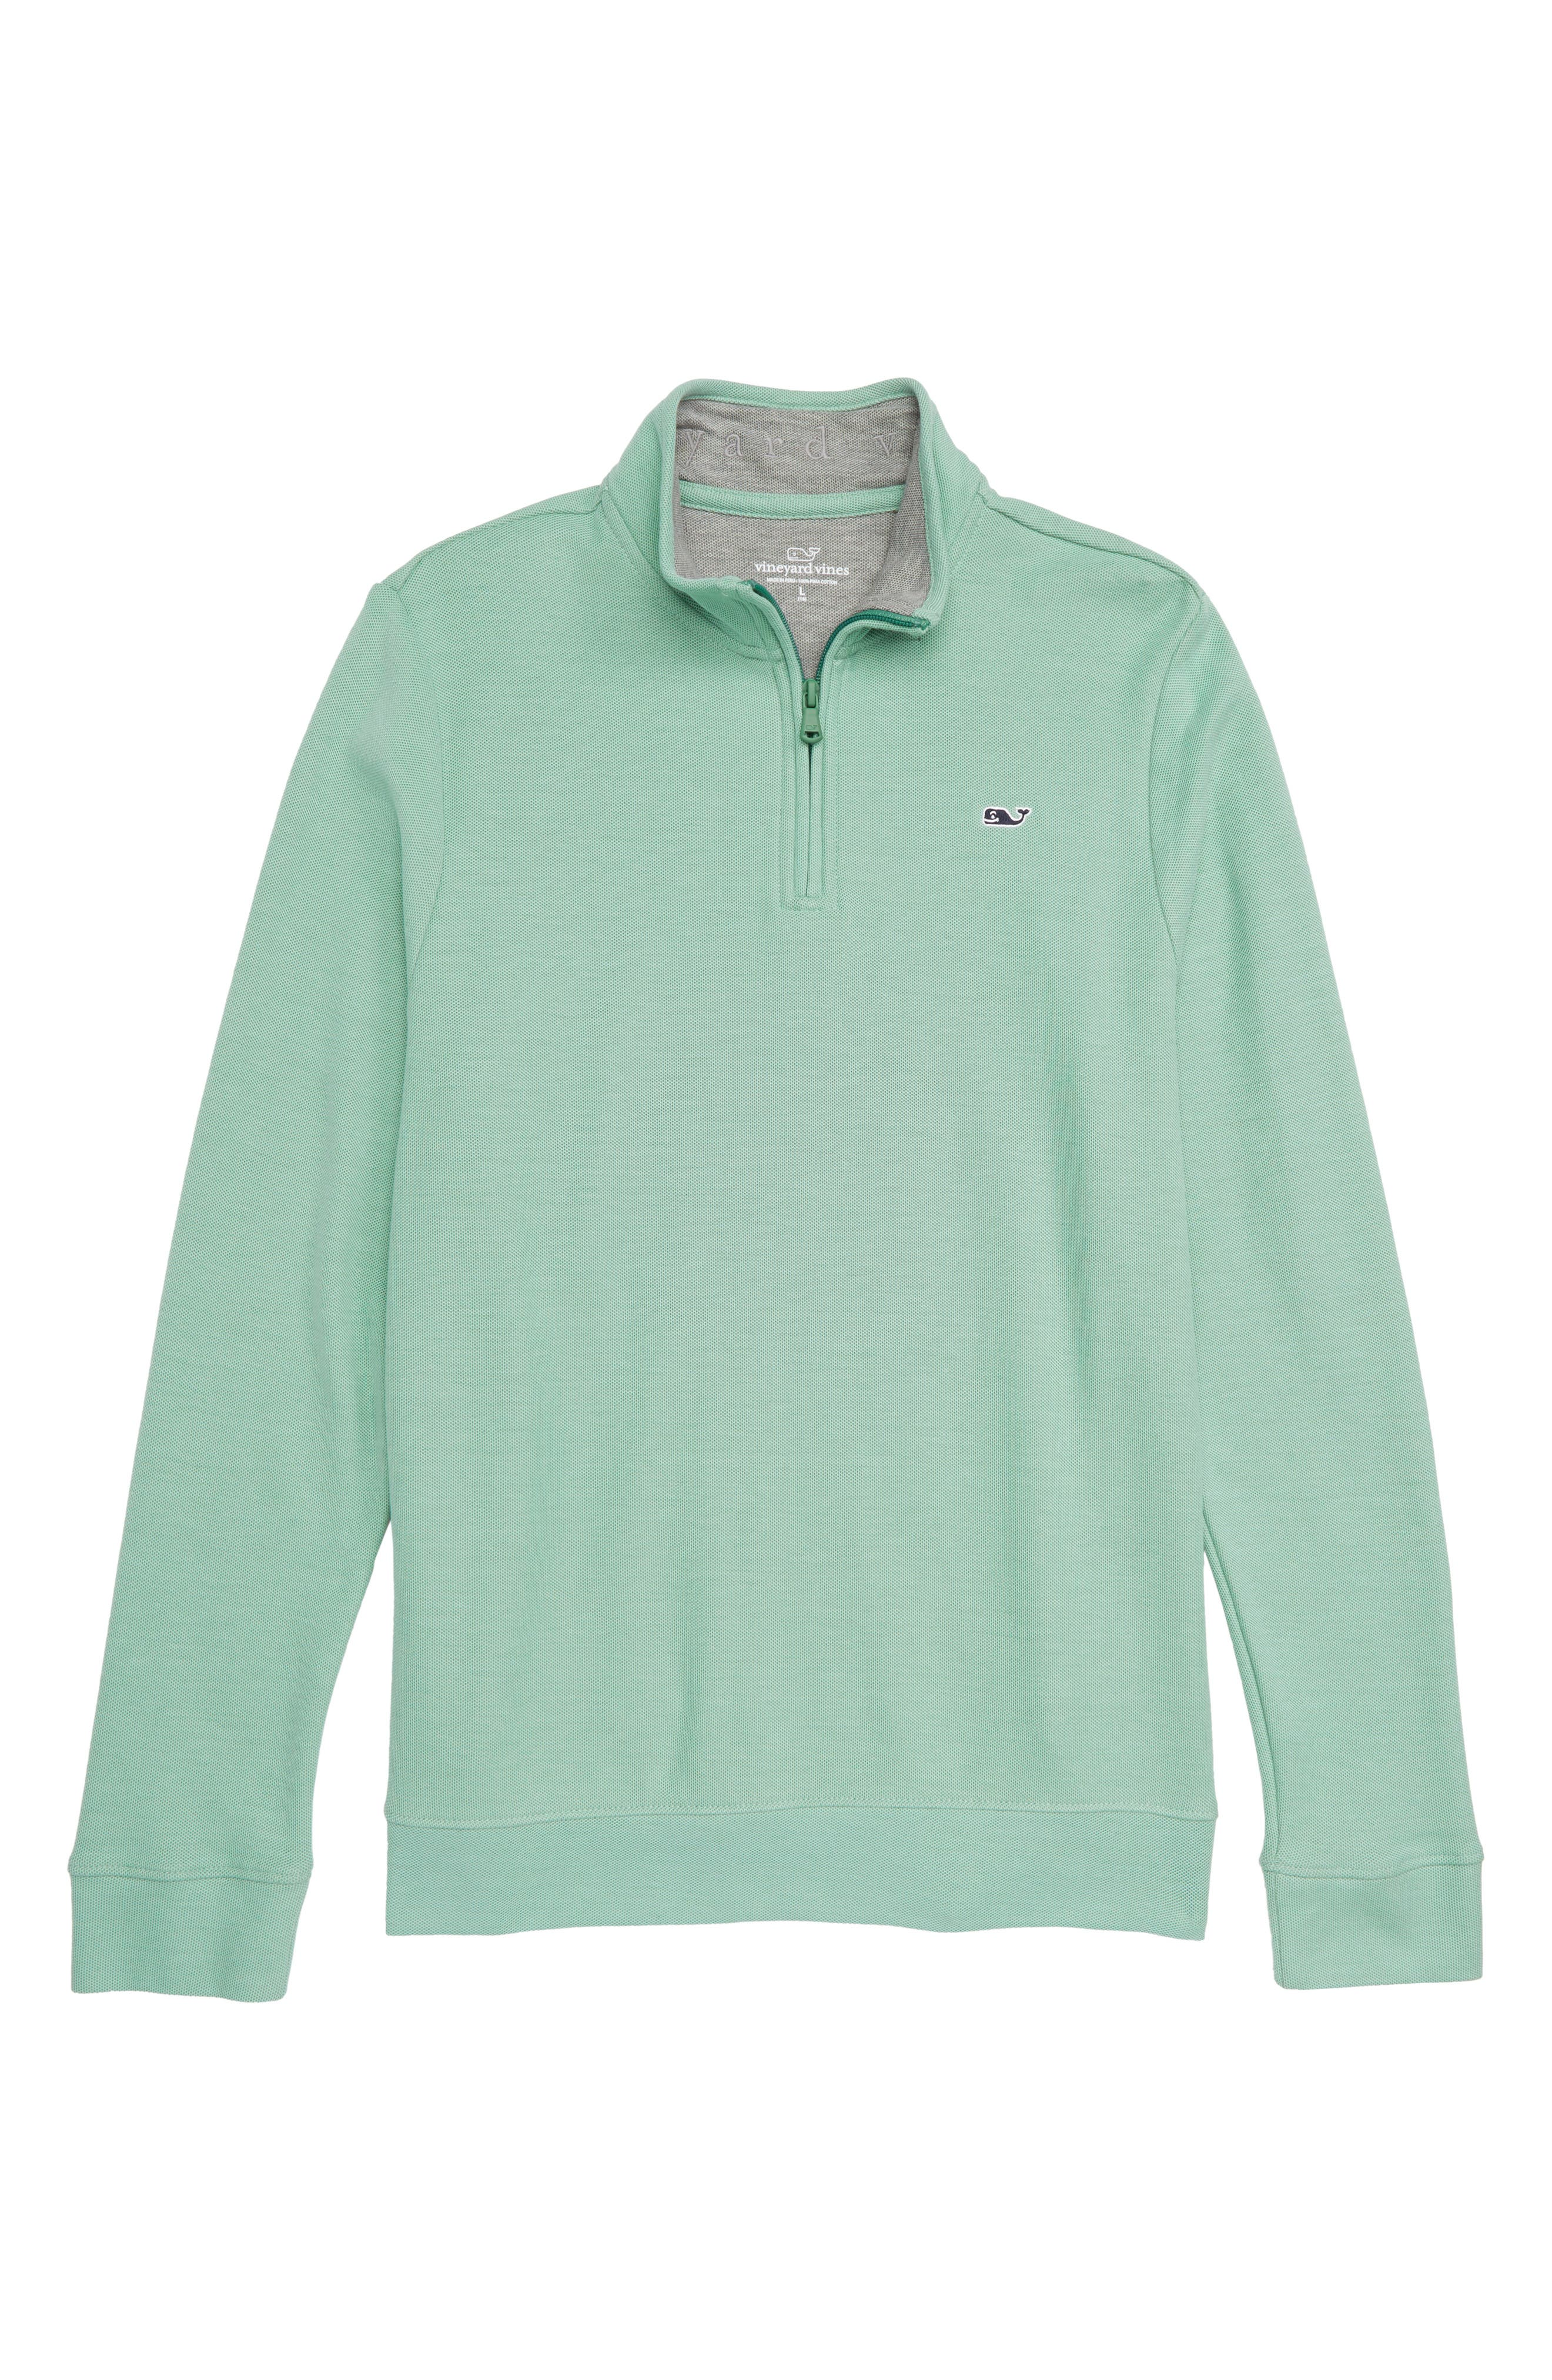 Quarter Zip Pullover,                             Main thumbnail 1, color,                             Starboard Green